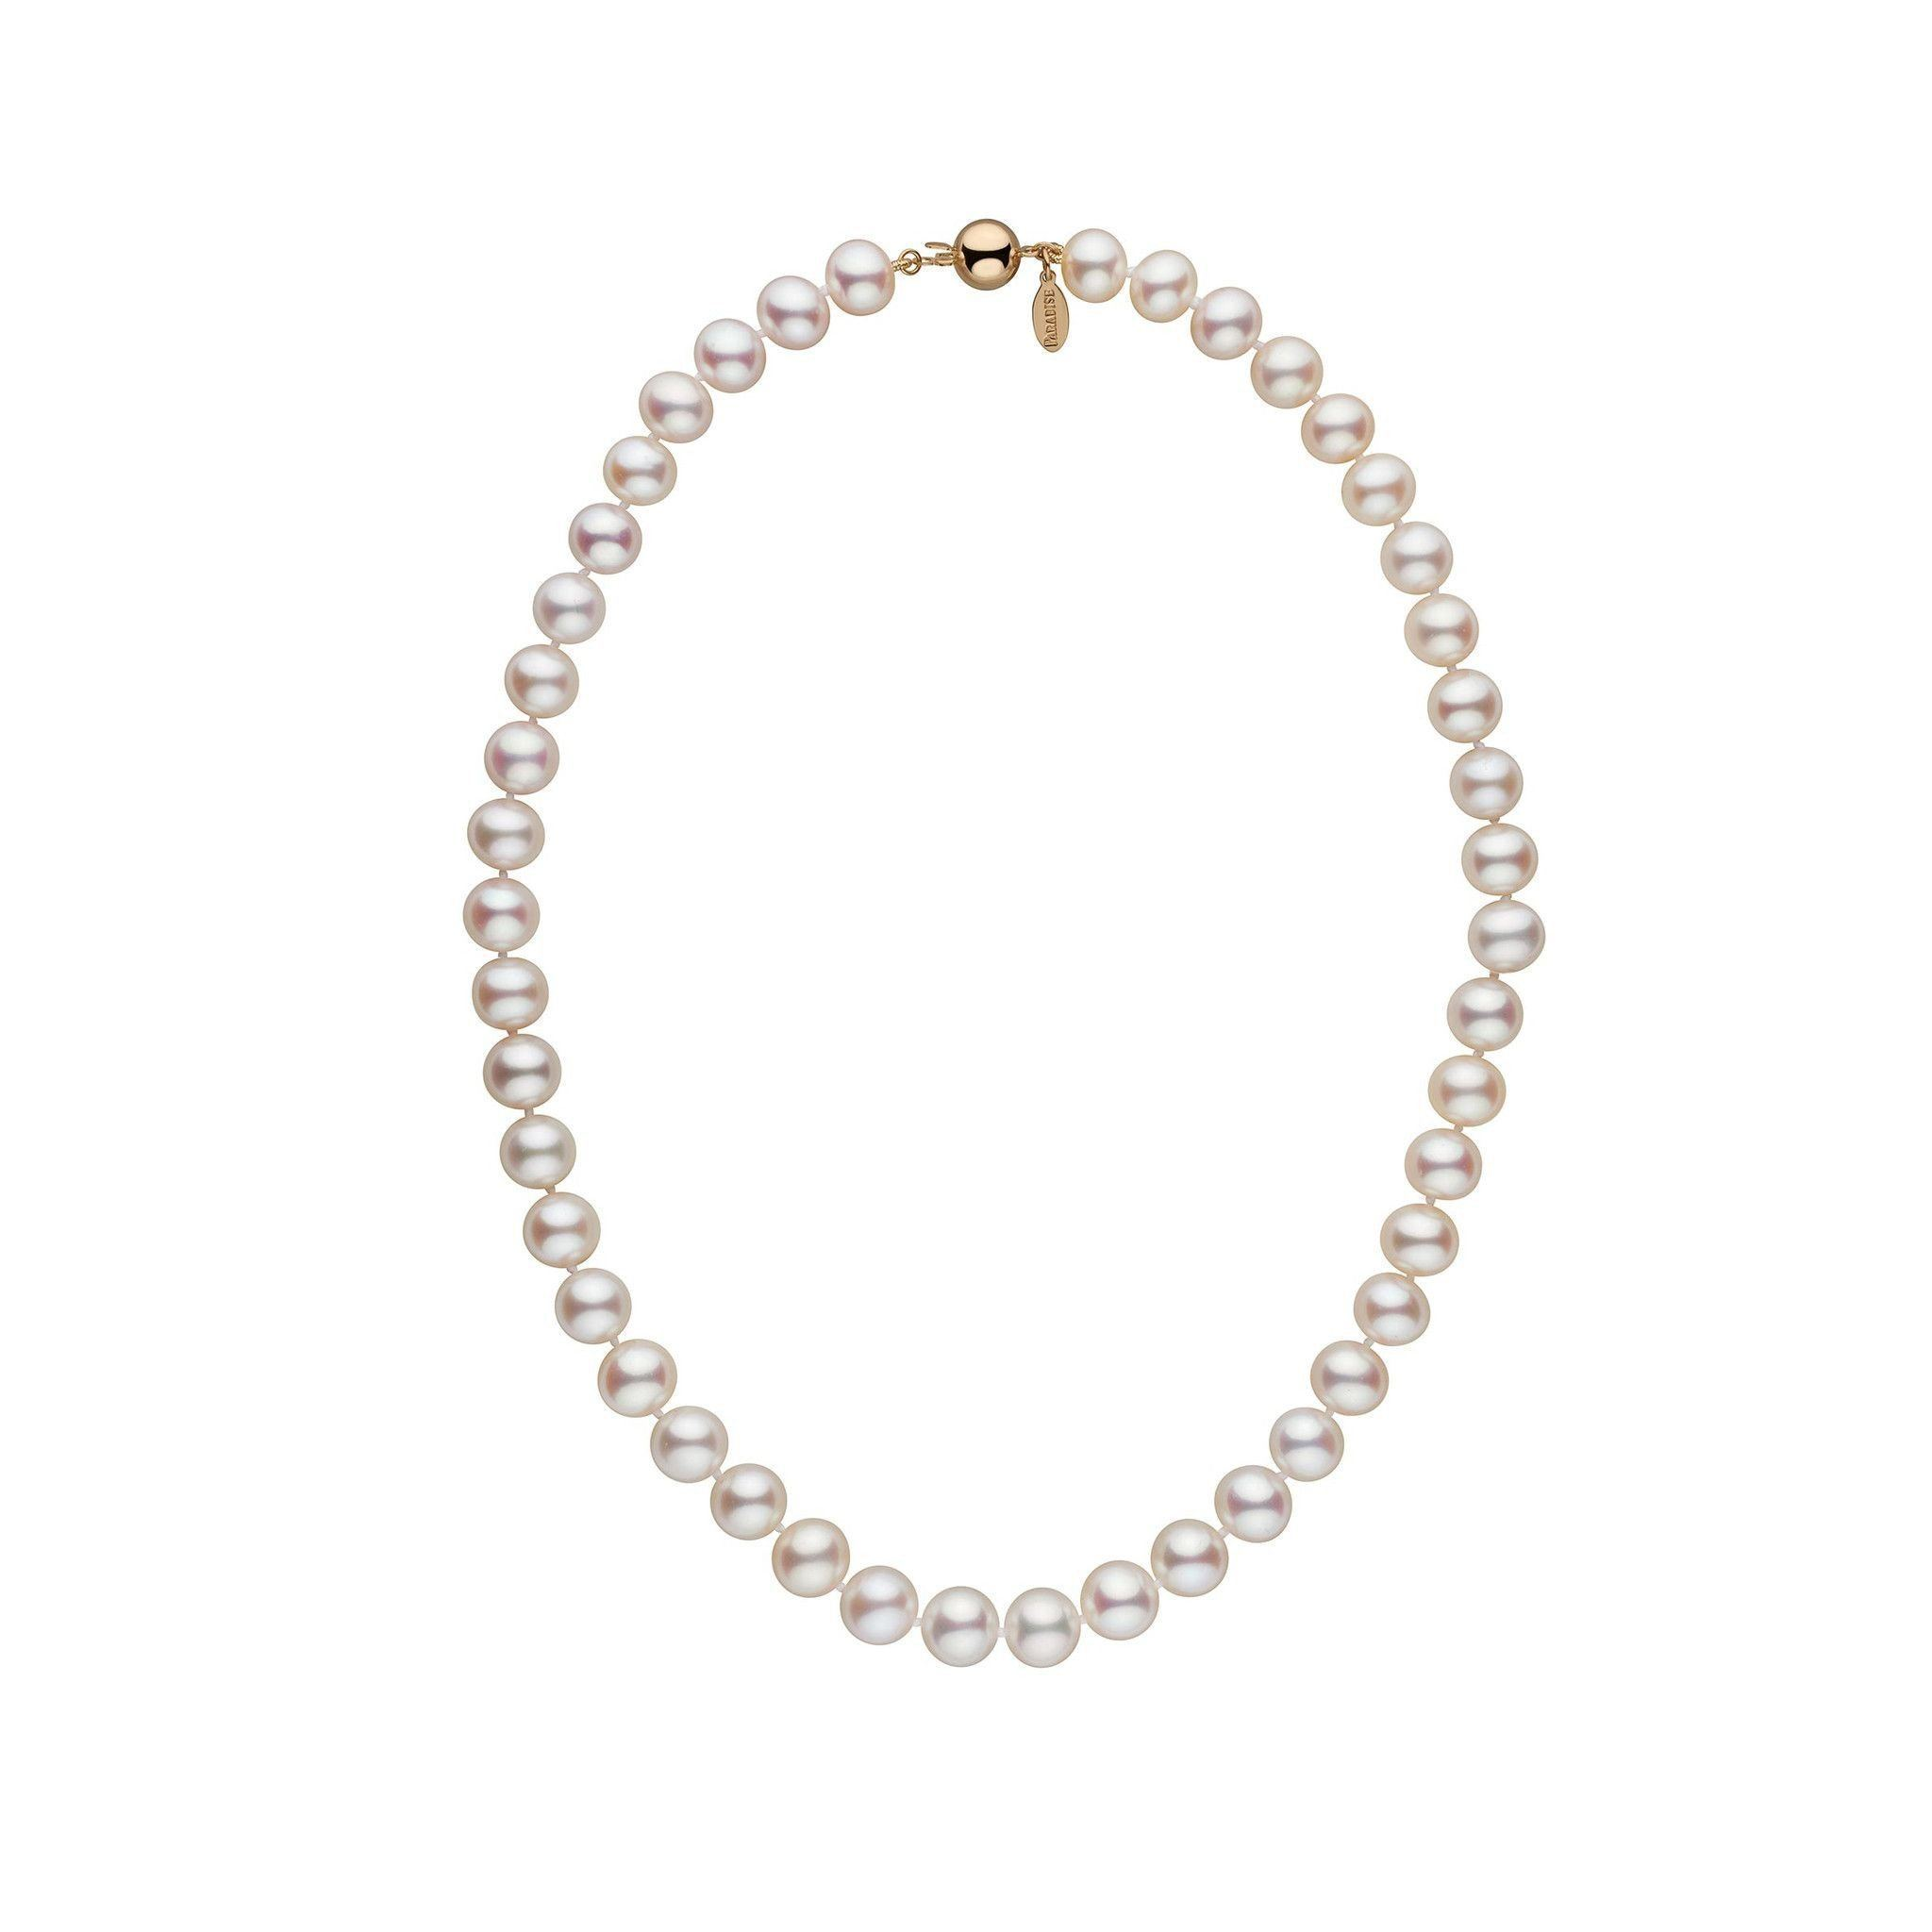 8.5-9.0 mm 16 Inch White Freshadama Freshwater Pearl Necklace